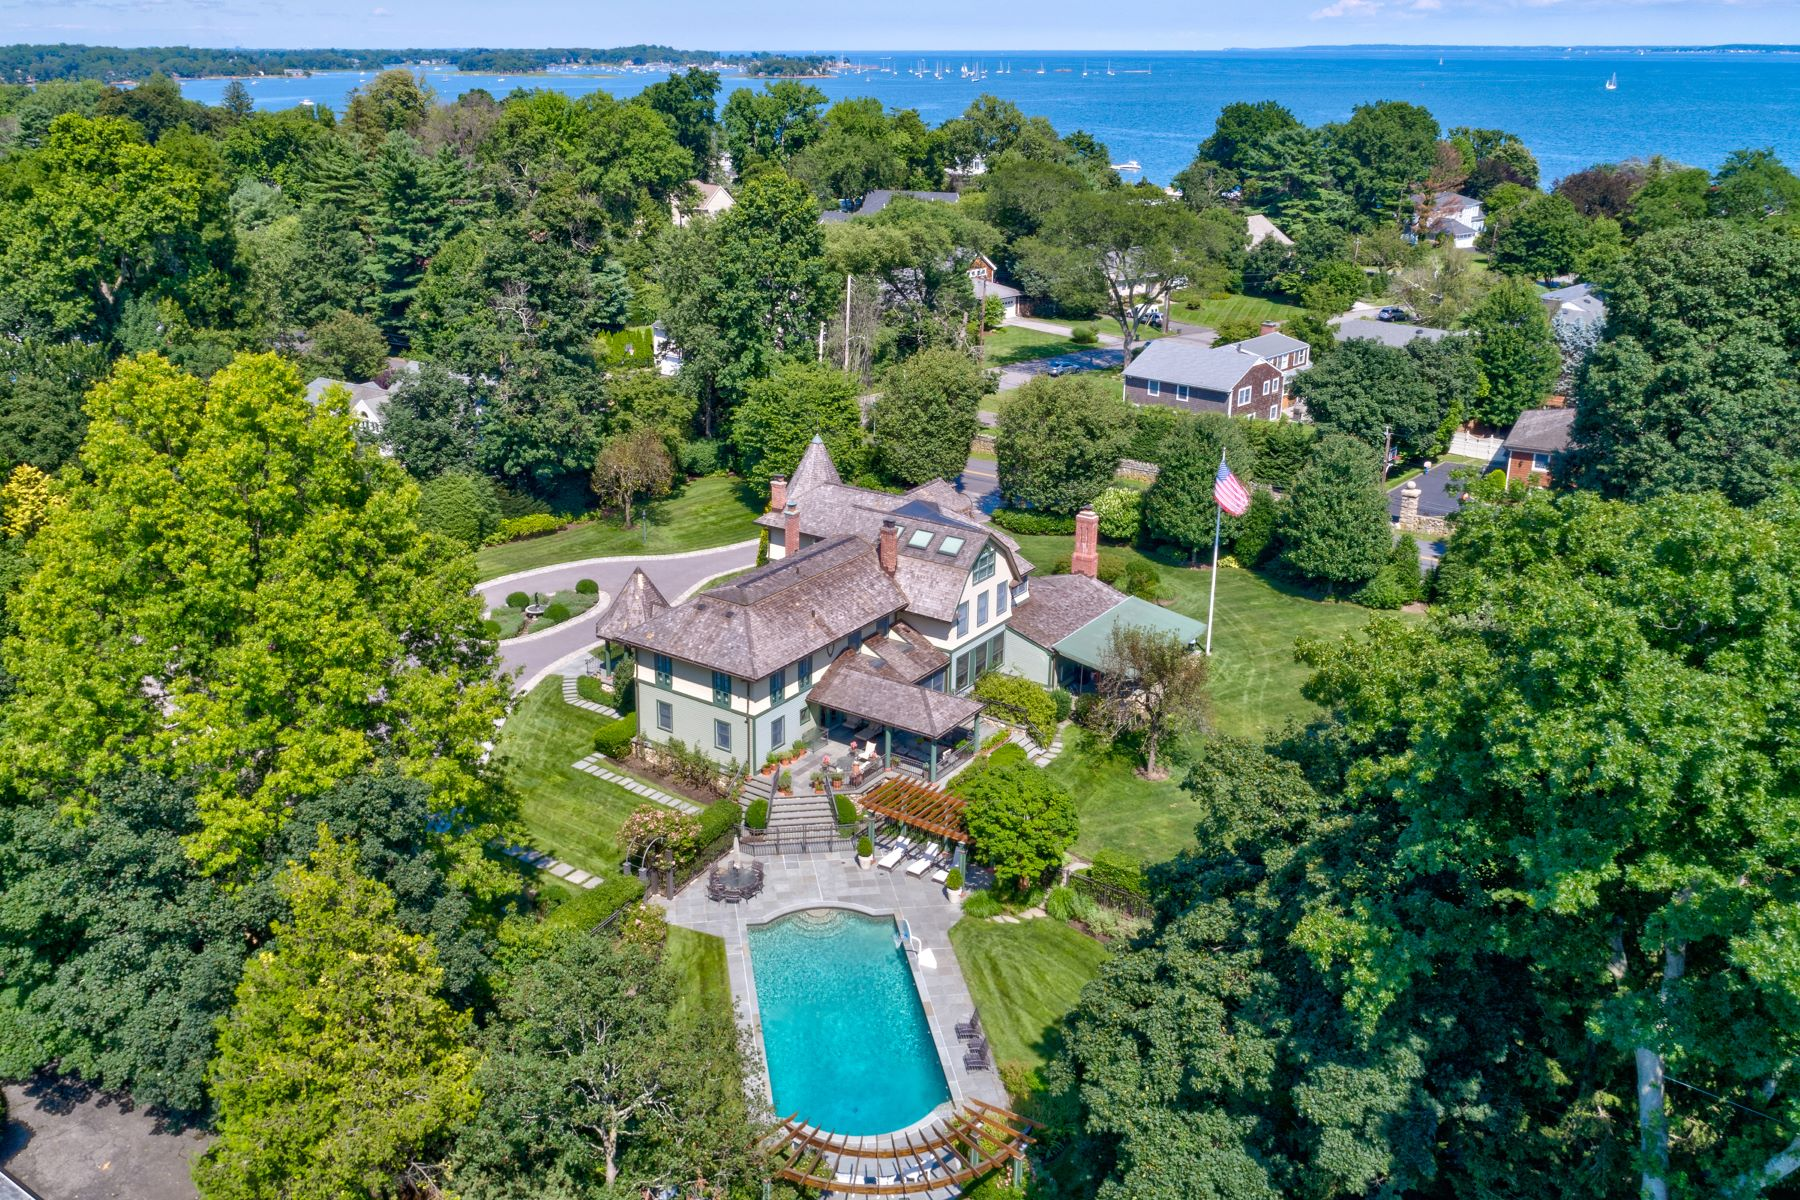 Single Family Homes for Active at 981 Orienta Avenue Mamaroneck, New York 10543 United States